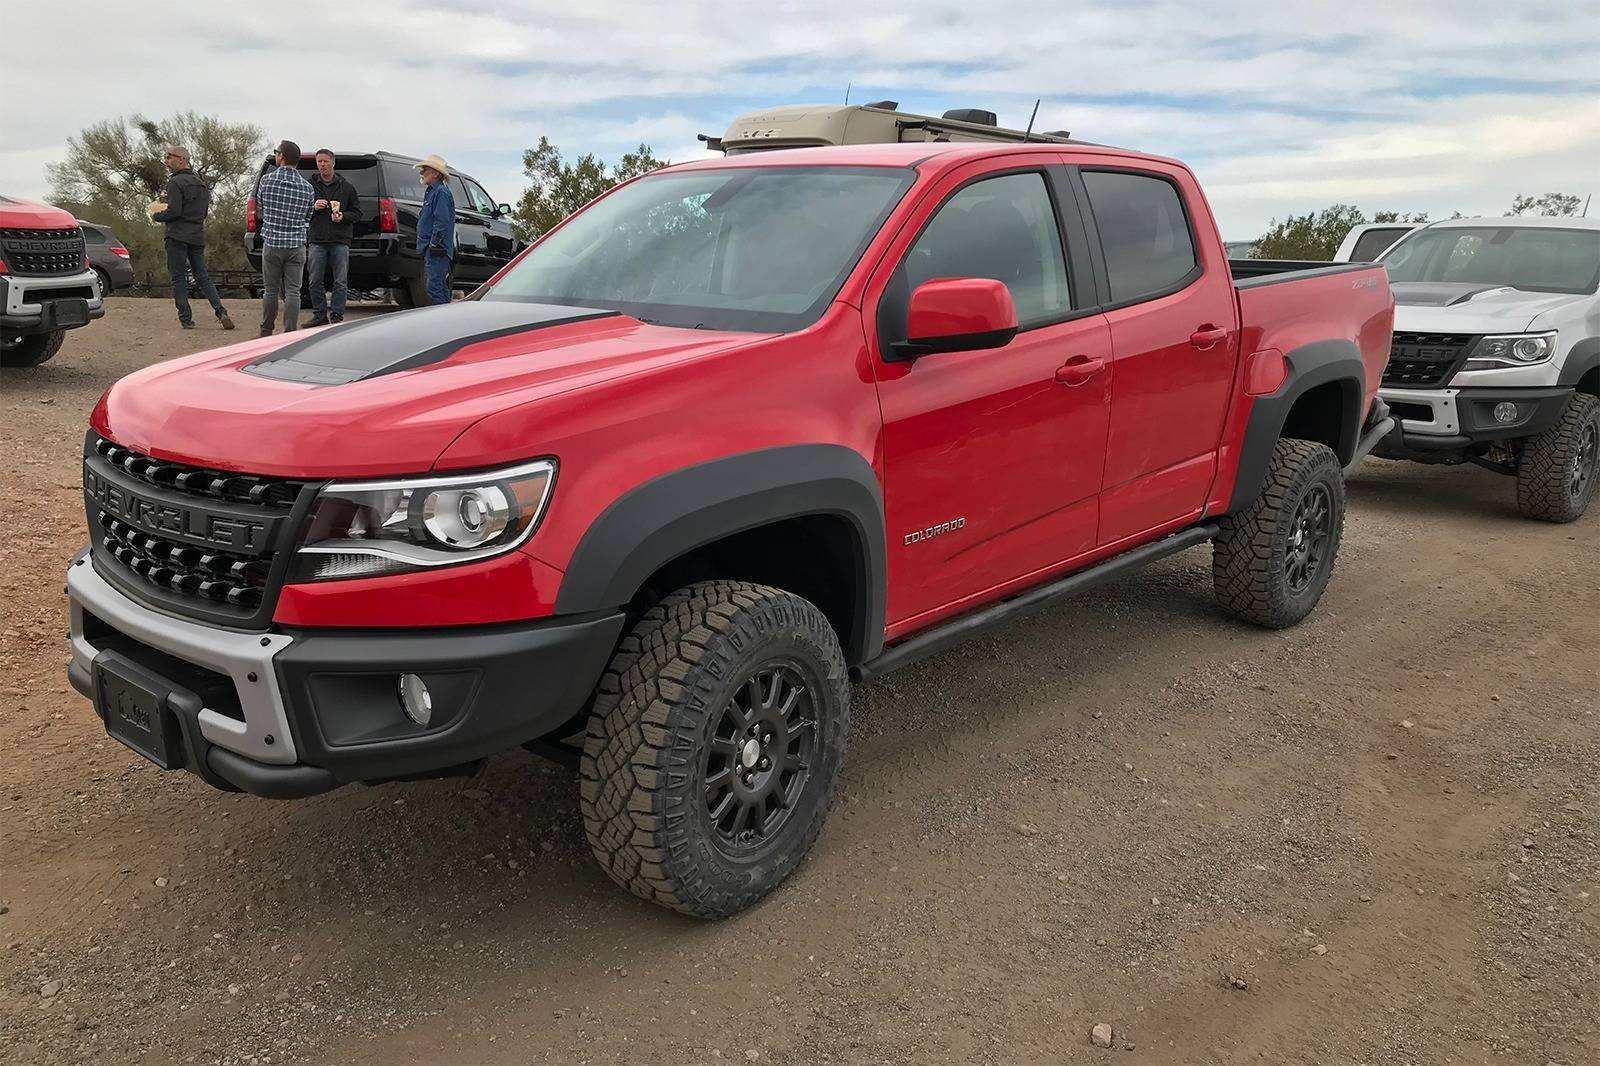 36 The 2019 Chevrolet Colorado Update Price And Review Configurations with 2019 Chevrolet Colorado Update Price And Review